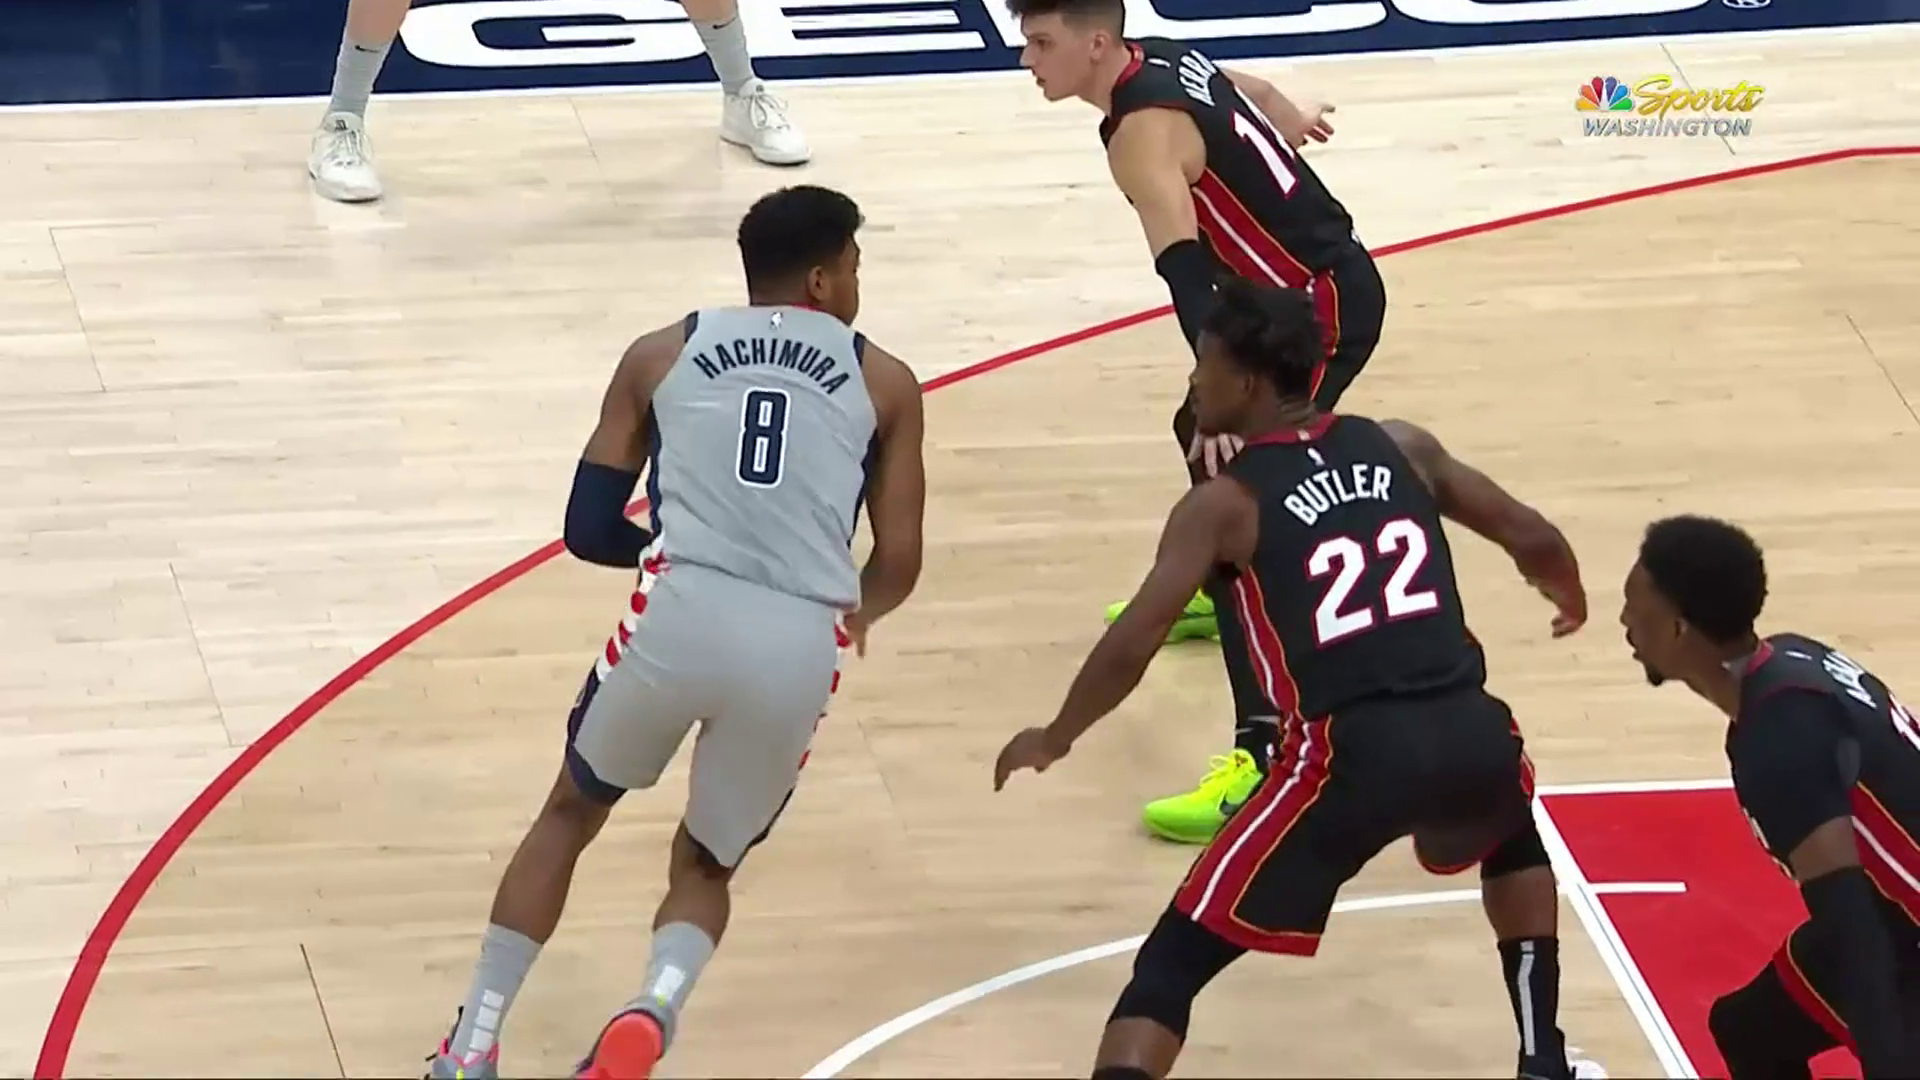 Highlights: Rui Hachimura vs. Heat - 1/9/21